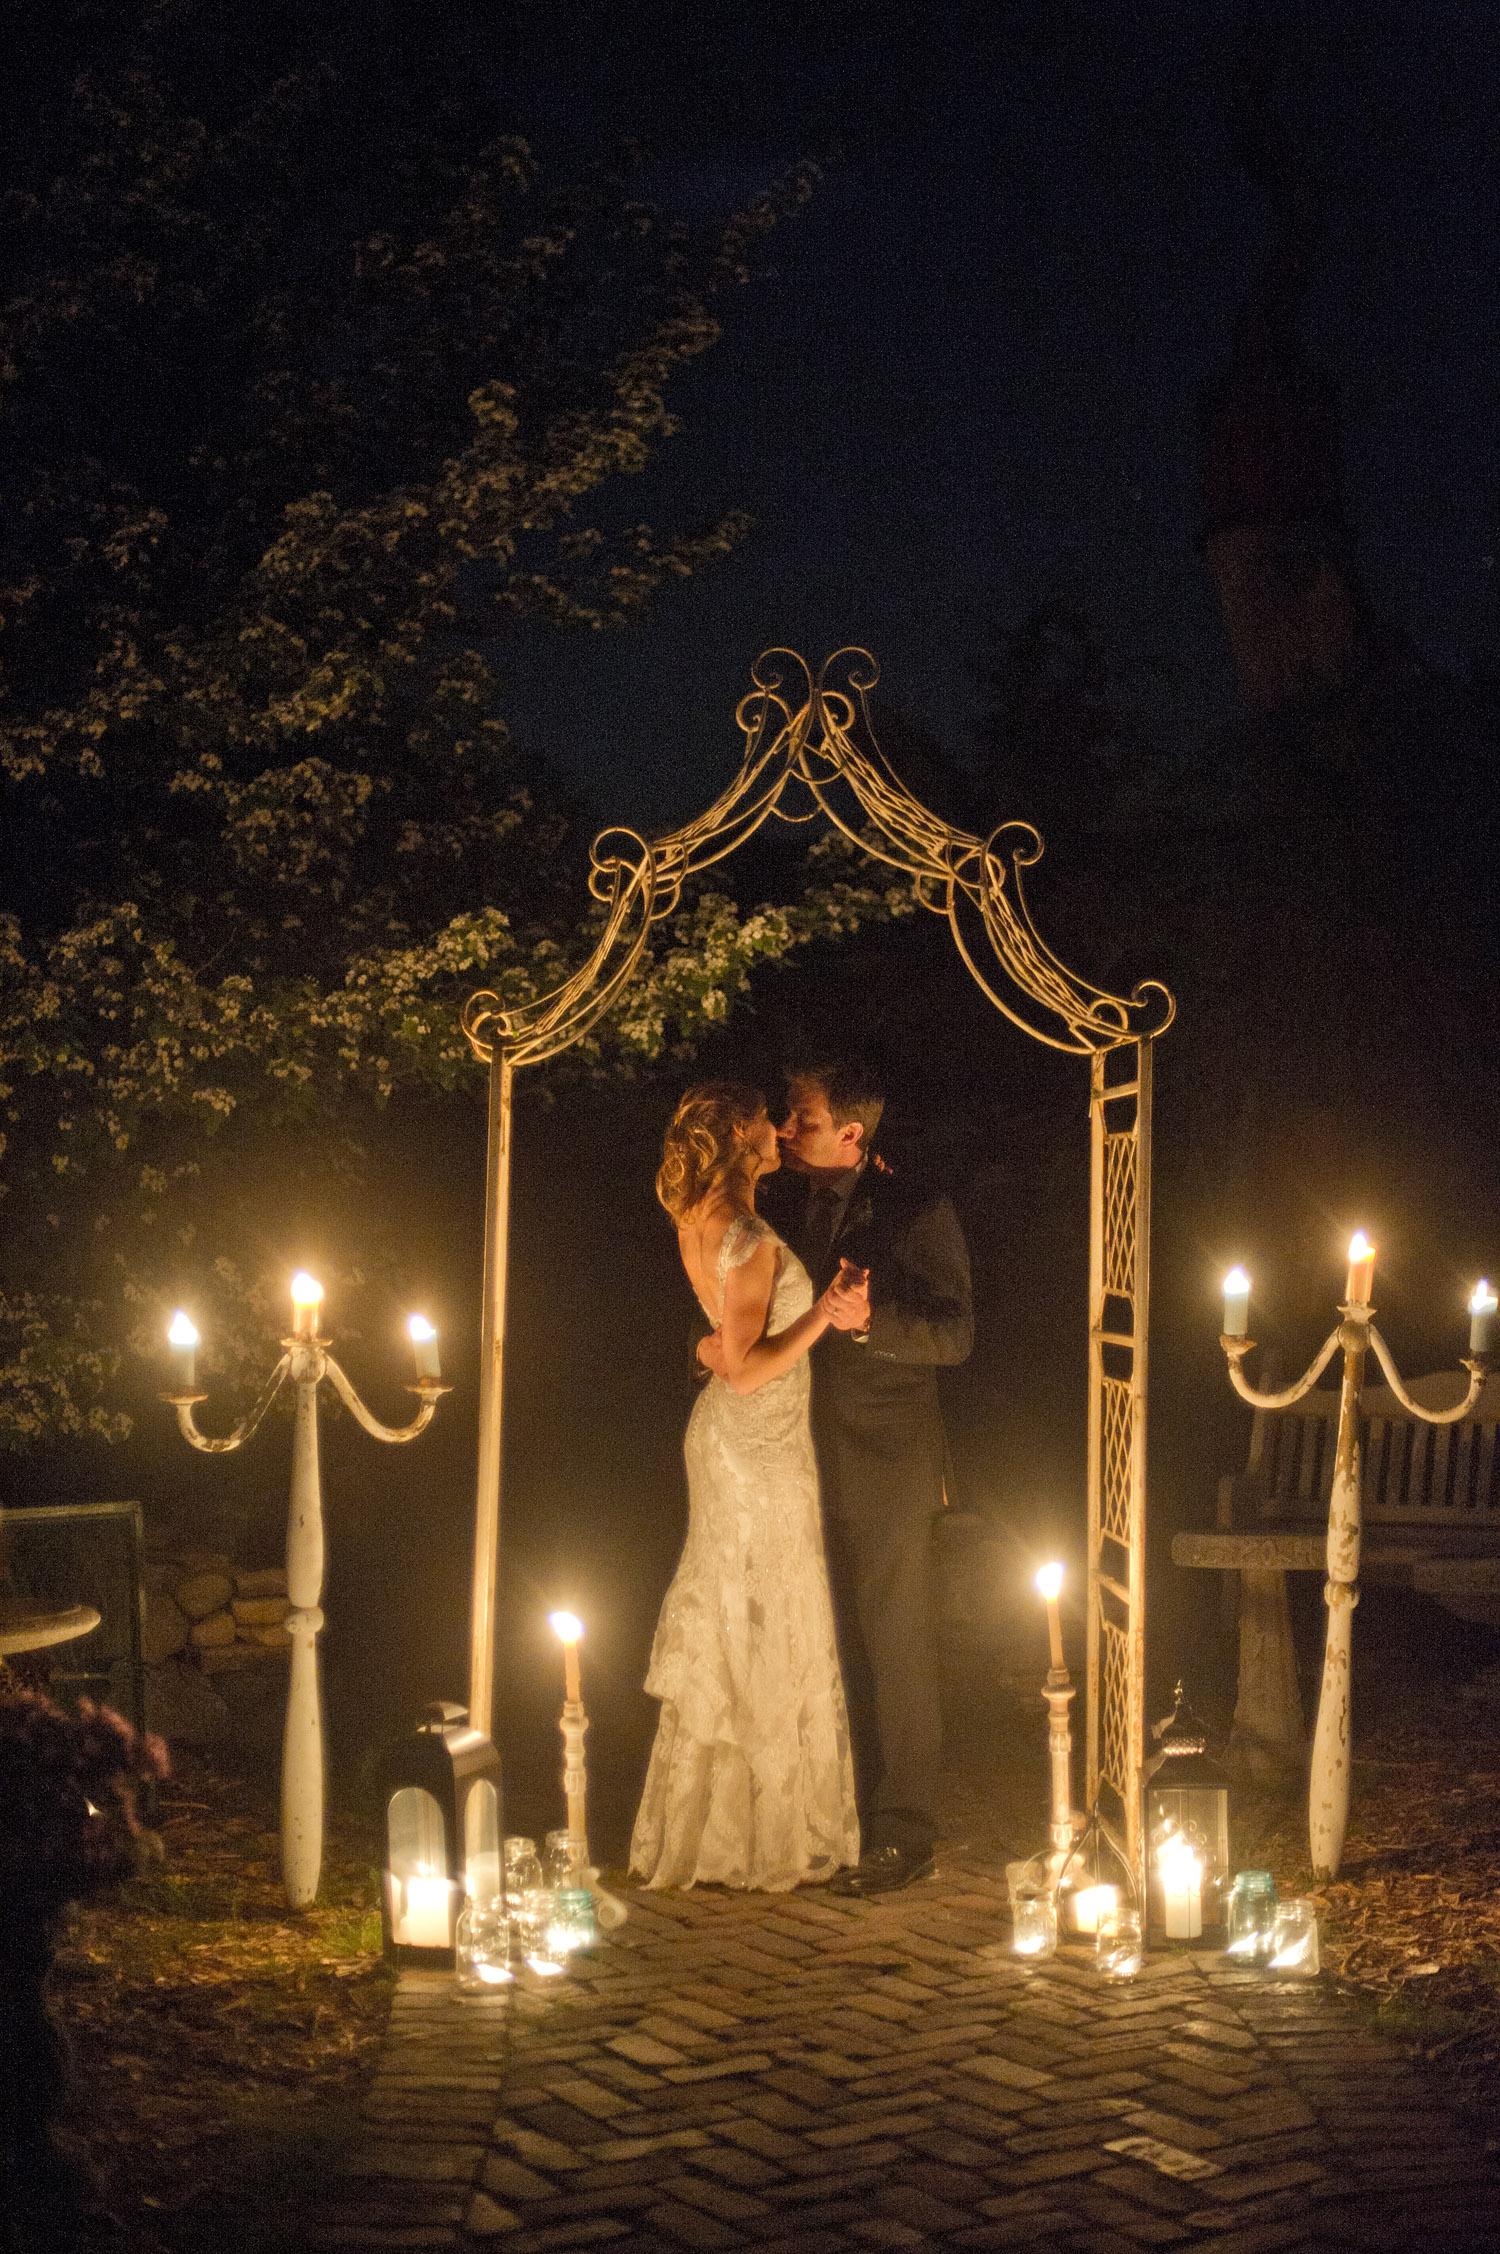 bride and groom share a nighttime photo session during the wedding at this springtime wedding at Northwind Perennial gardens - a wisconsin wedding venue - as a film wedding photographer Lexia Frank photographs this destination wedding on film